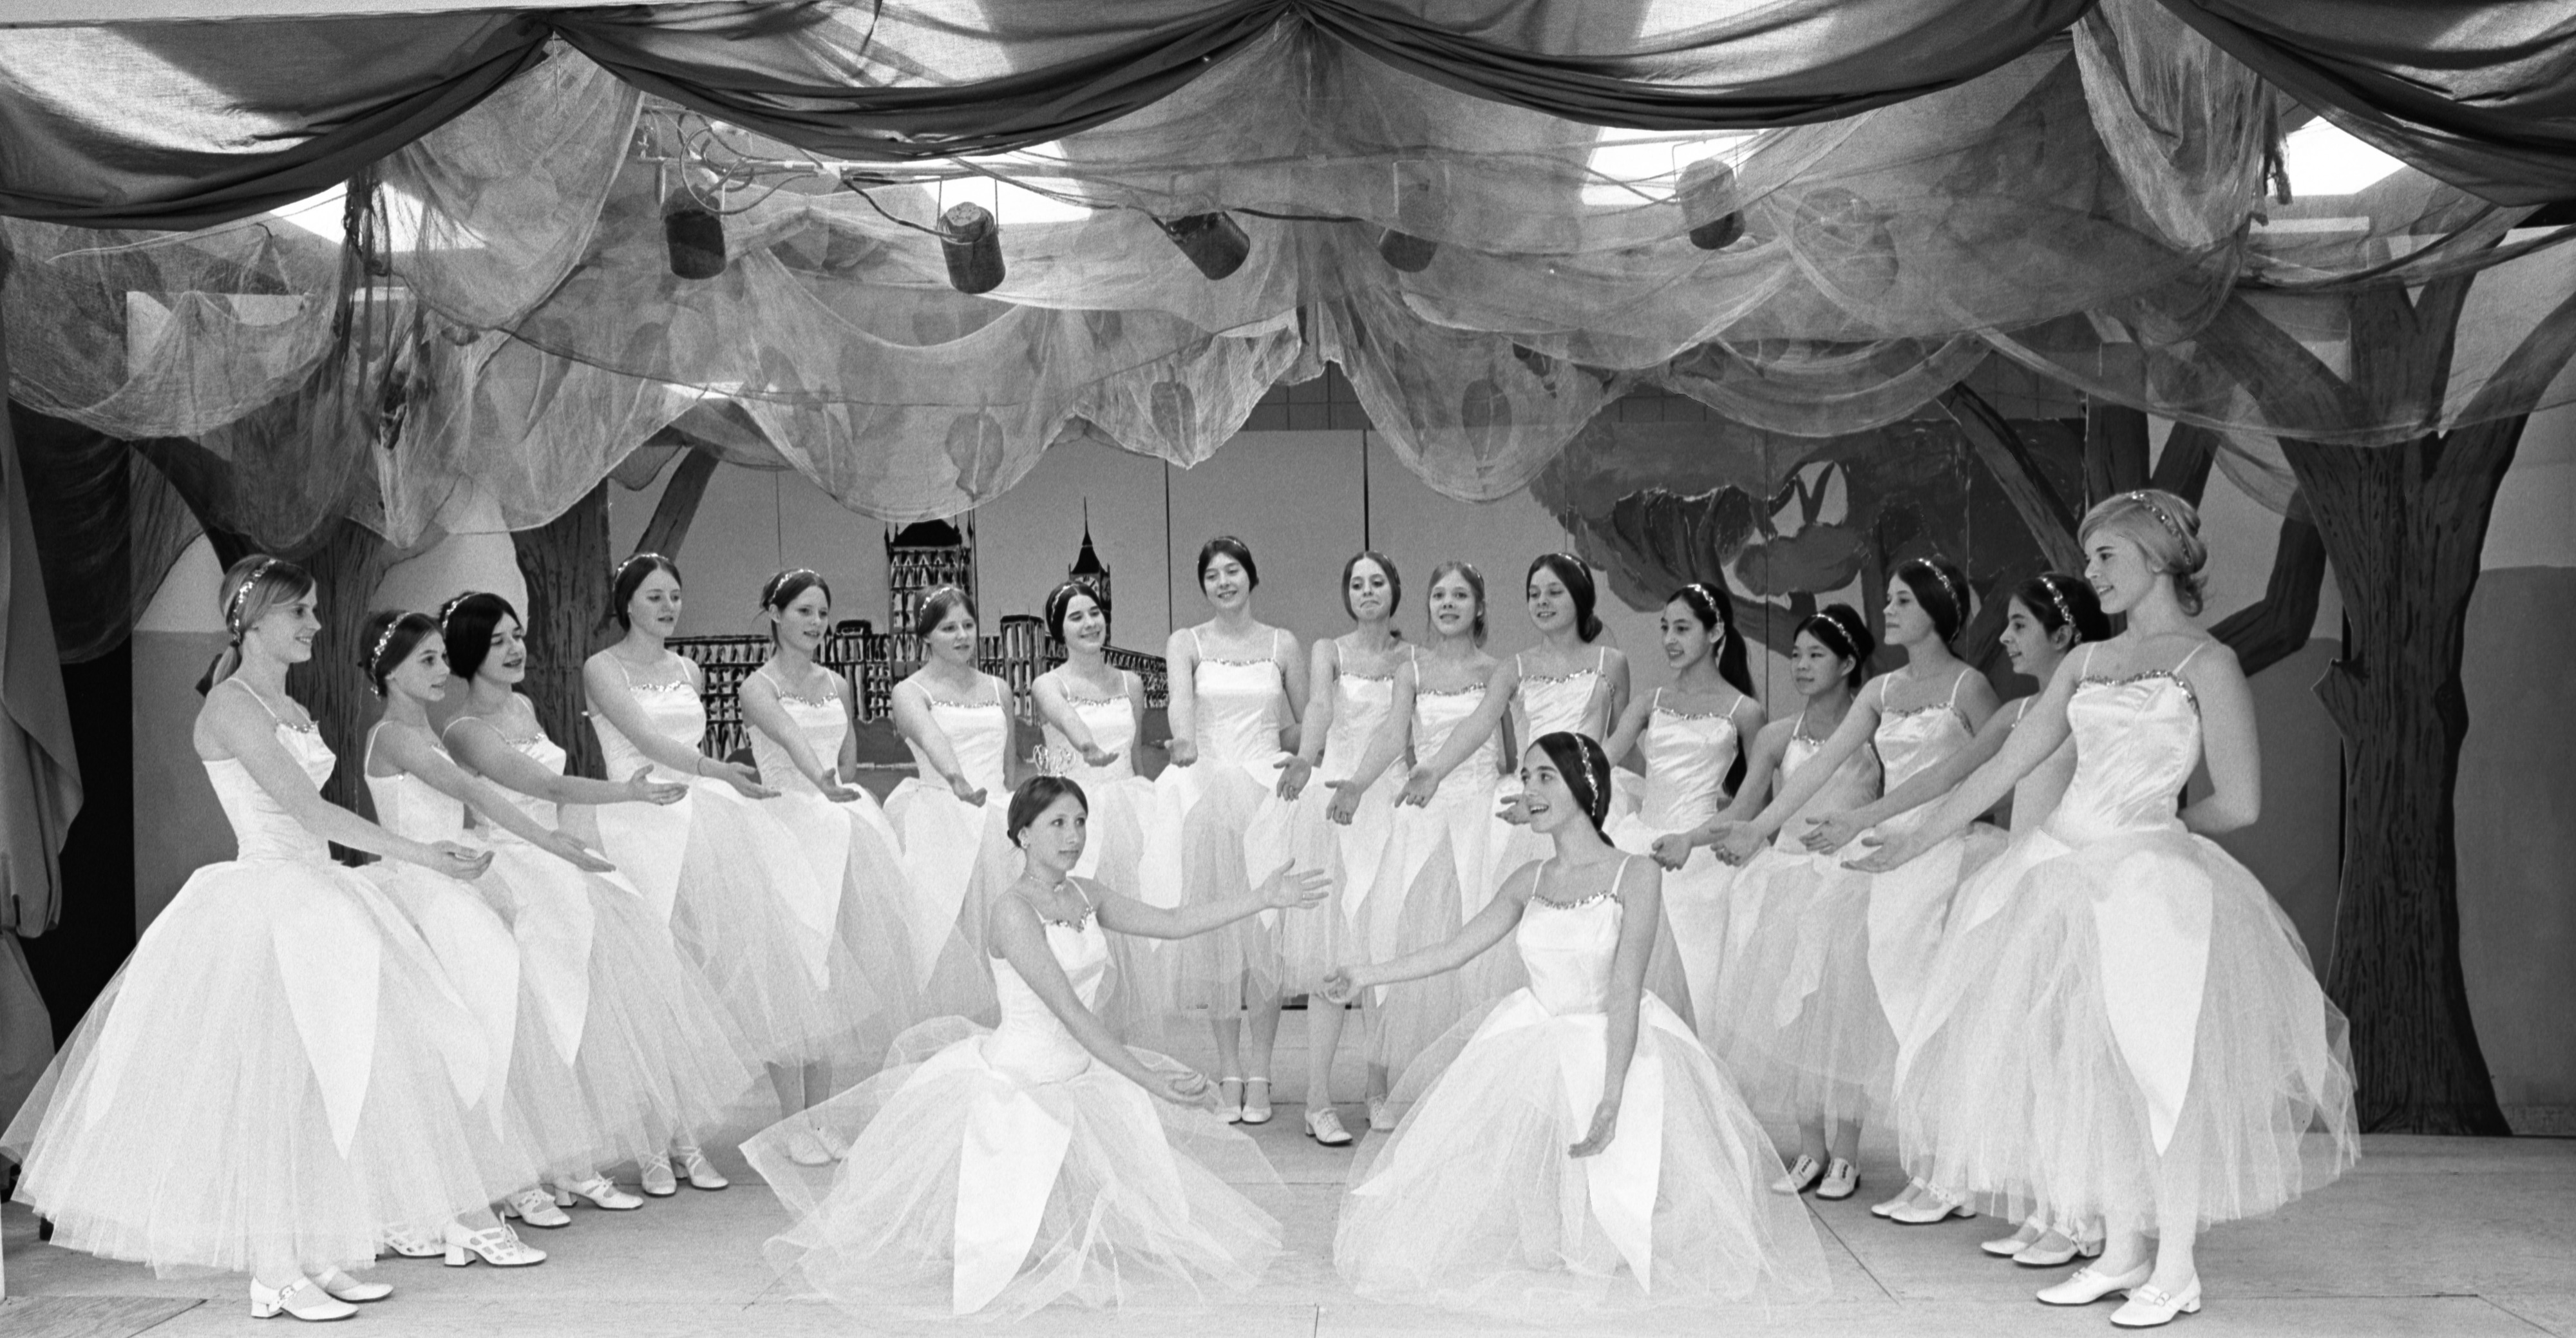 Students At Greenhills School Rehearse For The Play 'Iolanthe', March 10, 1972 image